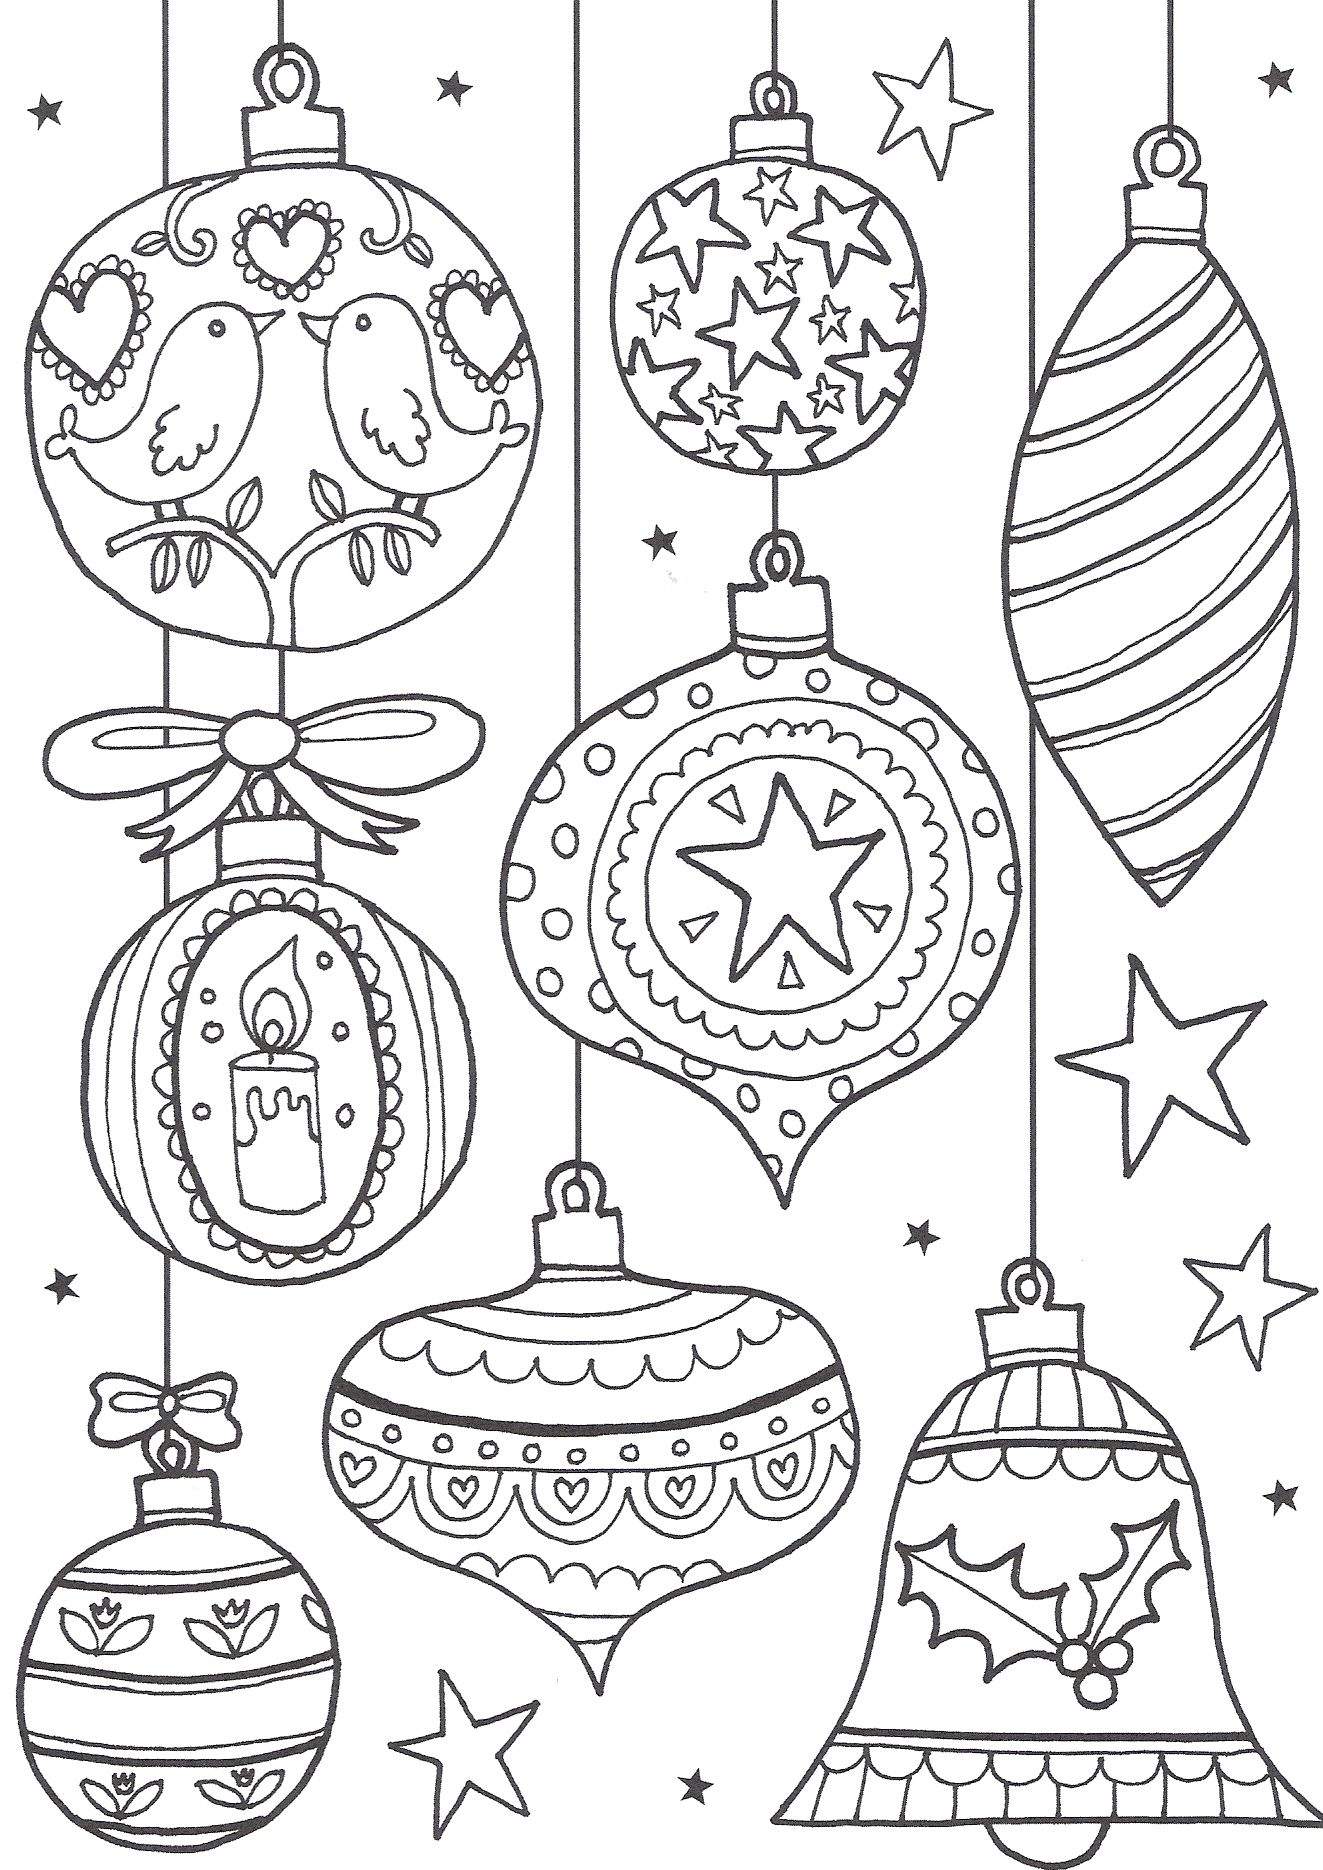 Merry Christmas Colouring Pages With Free For Adults The Ultimate Roundup